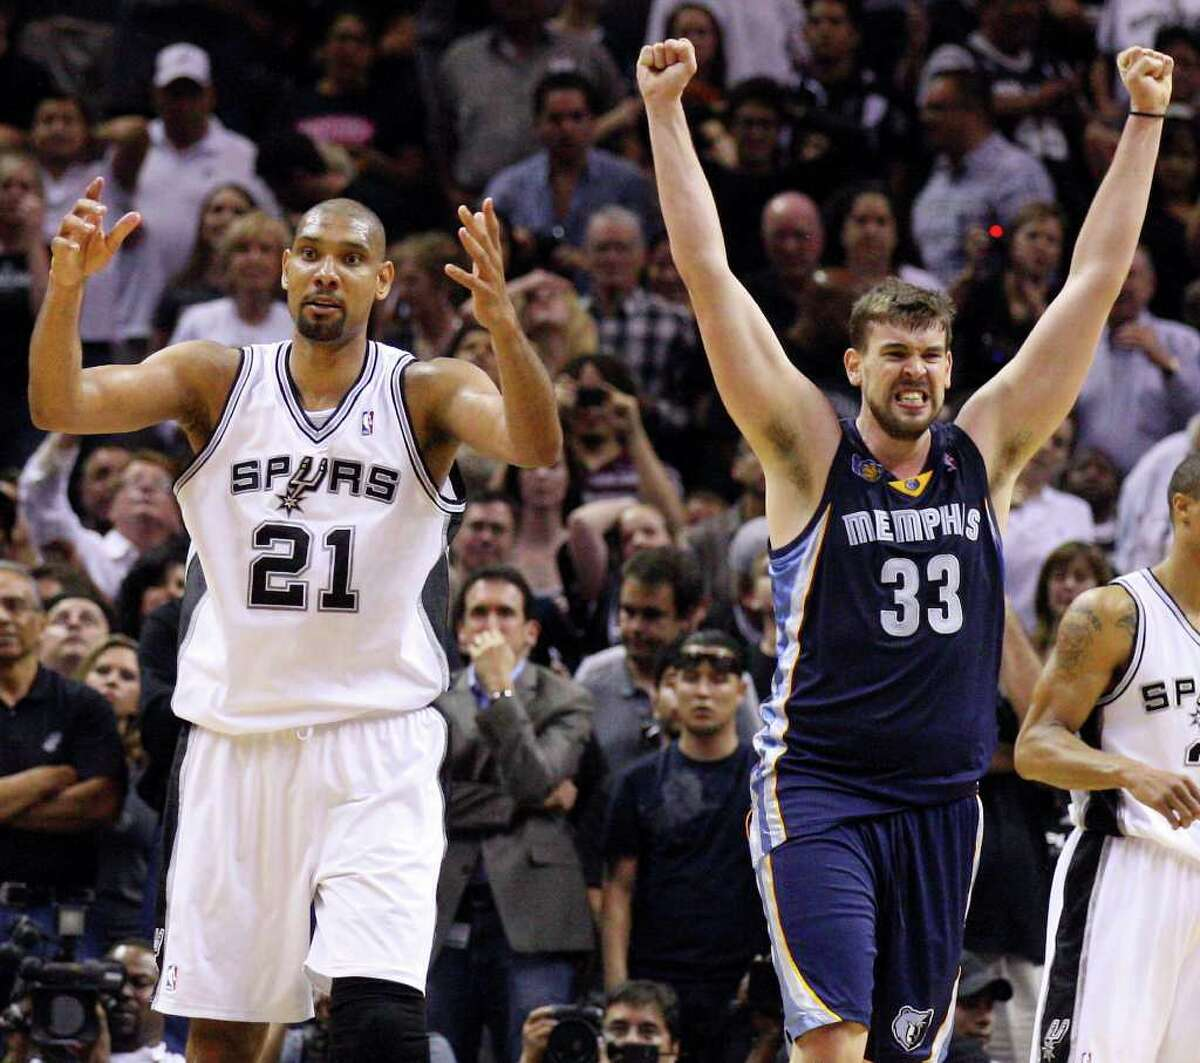 FOR SPORTS - San Antonio Spurs' Tim Duncan (left) reacts at the end of the game as Memphis Grizzlies' Marc Gasol celebrates in game one of the NBA Western Conference First Round at the AT&T Center Sunday April 17, 2011. The Grizzlies won 101-98. (PHOTO BY EDWARD A. ORNELAS/eaornelas@express-news.net)